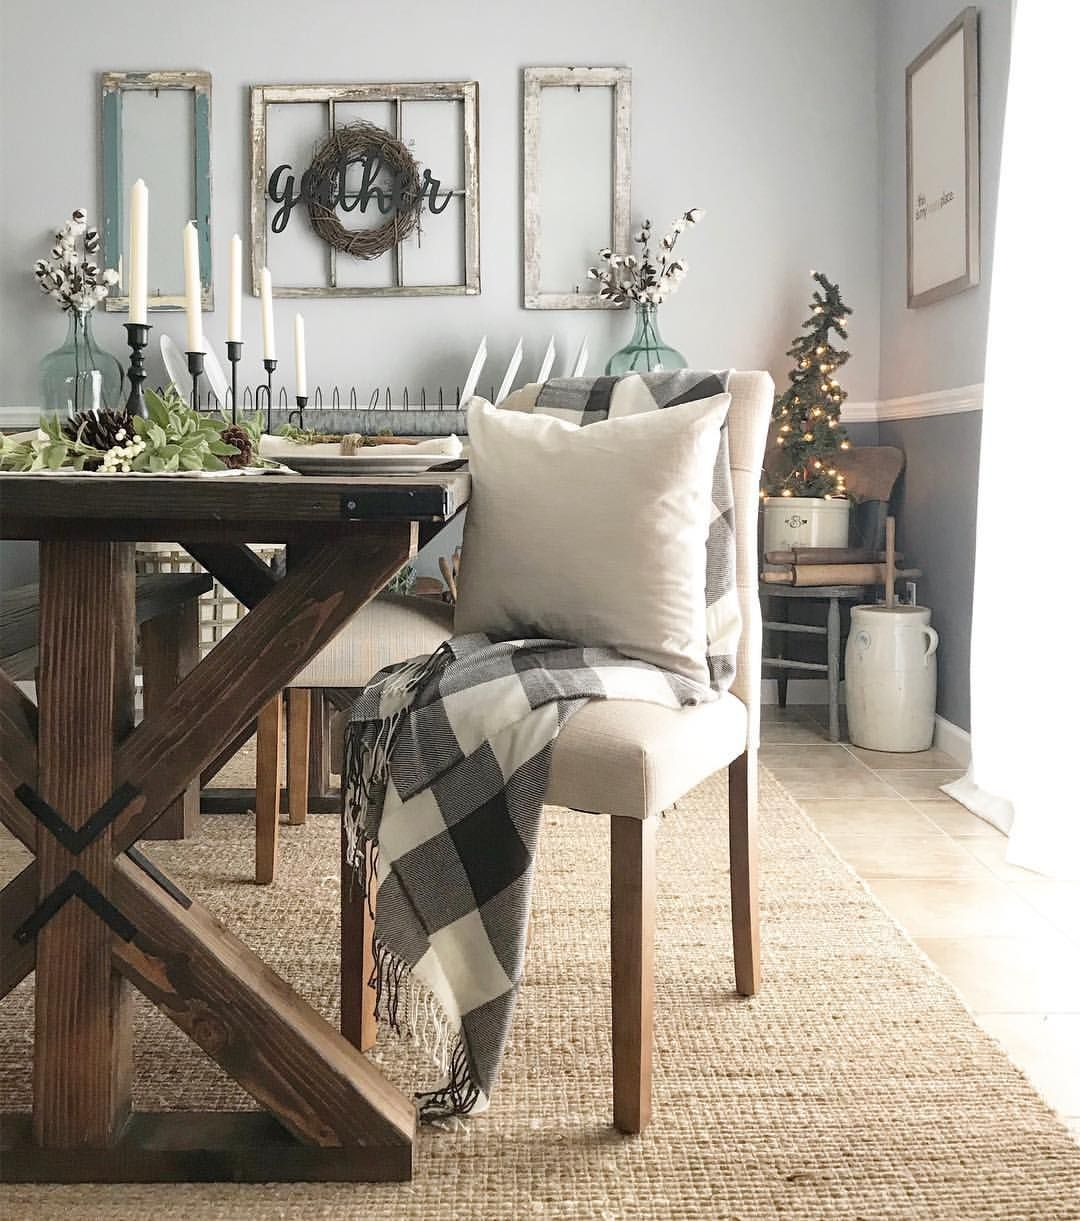 Pottery Barn Living Room With Carpet And Decorative Plant: Dining Room Farmhouse Christmas Decor Buffalo Check